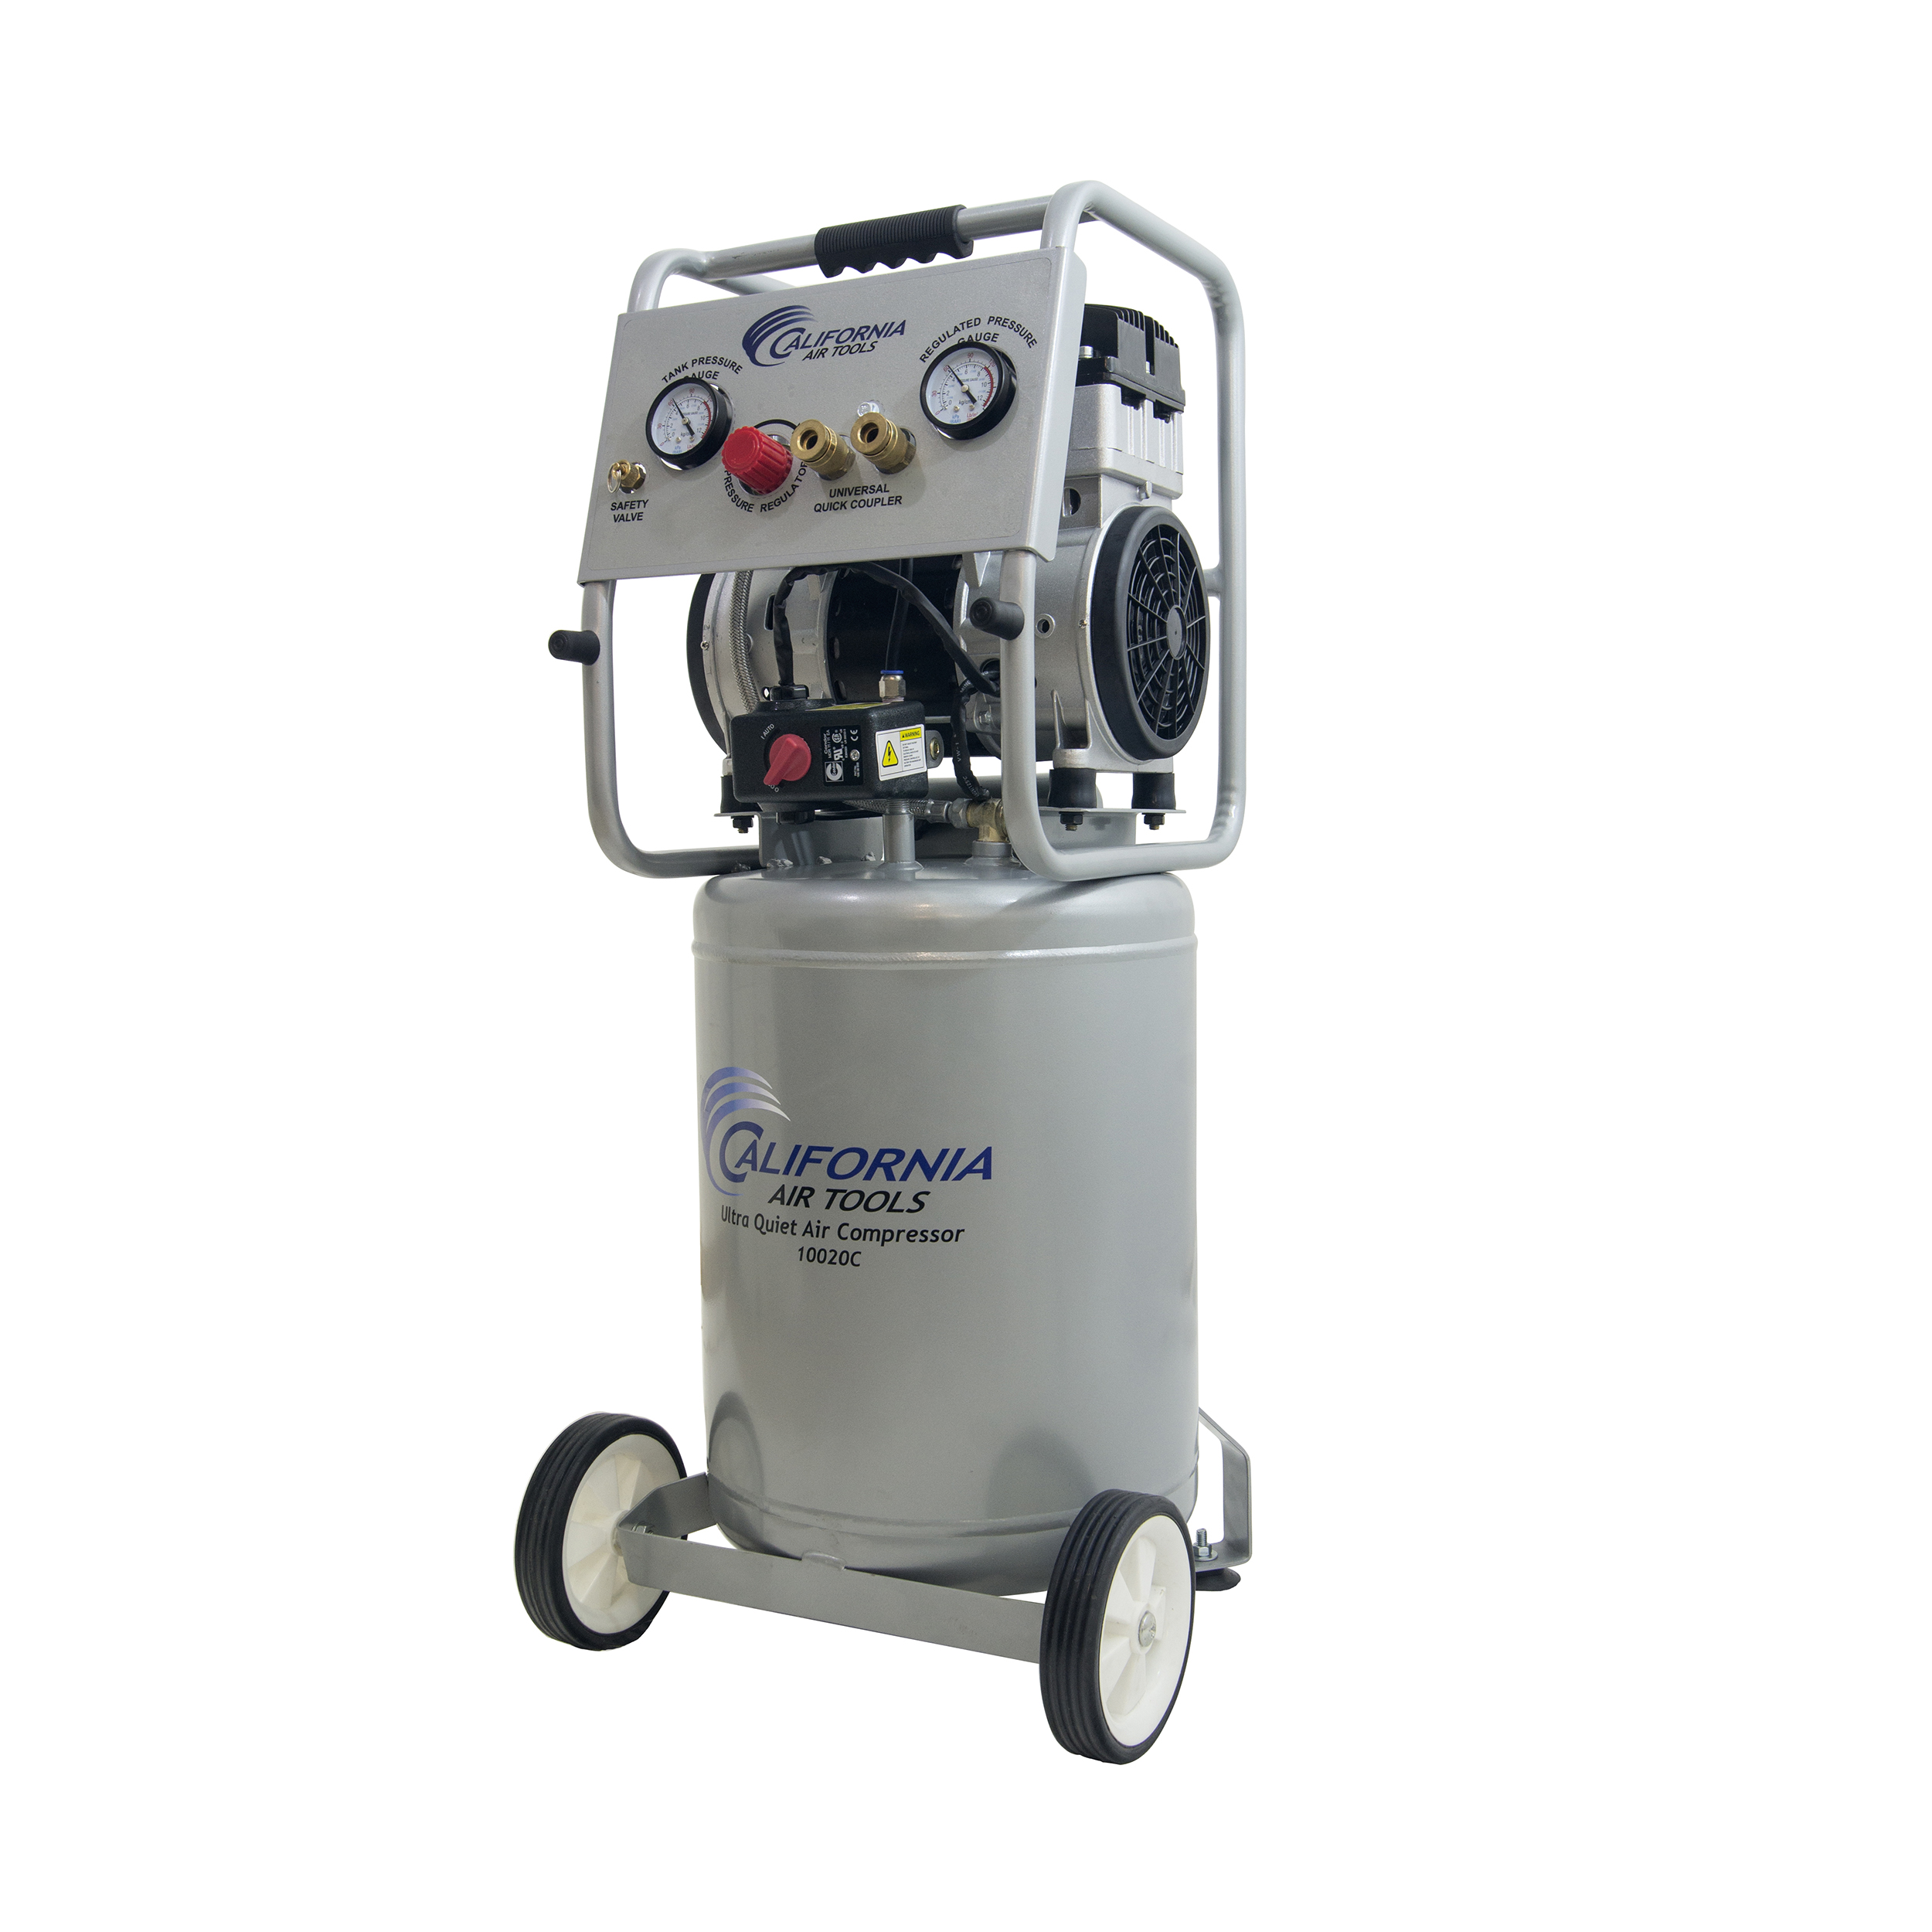 10020CAD-22060 Ultra Quiet Oil-Free Air Compressor, 2 HP, 10 Gal., 220V with Auto Drain Valve